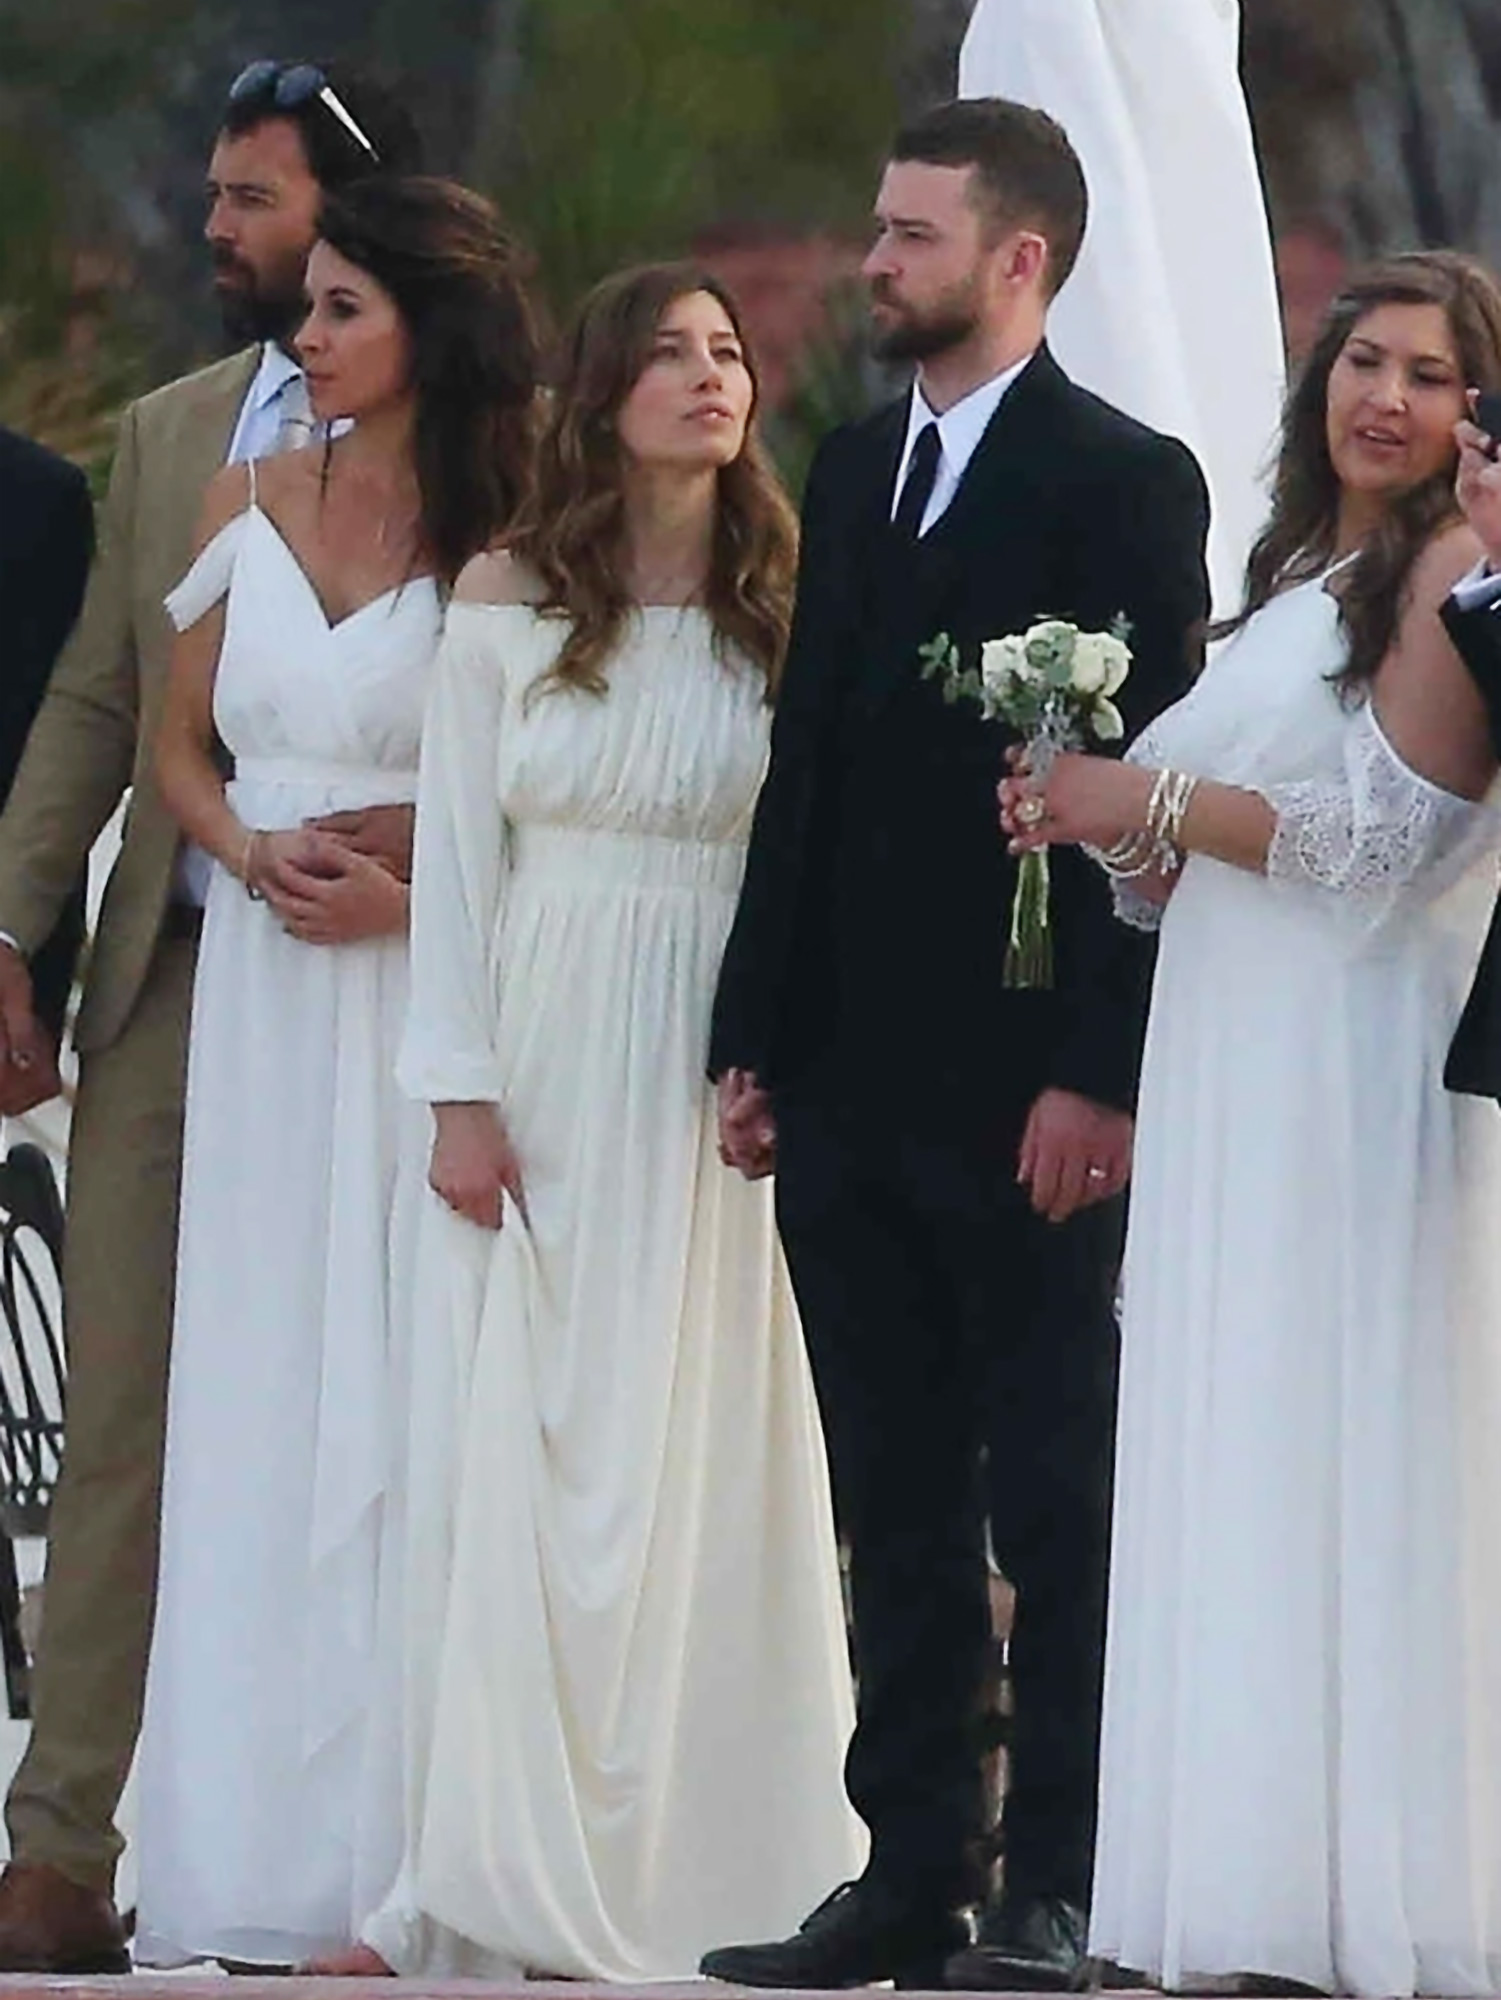 Jessica Biel Wedding Dress.Jessica Biel Justin Timberlake In Mexico For Brother S